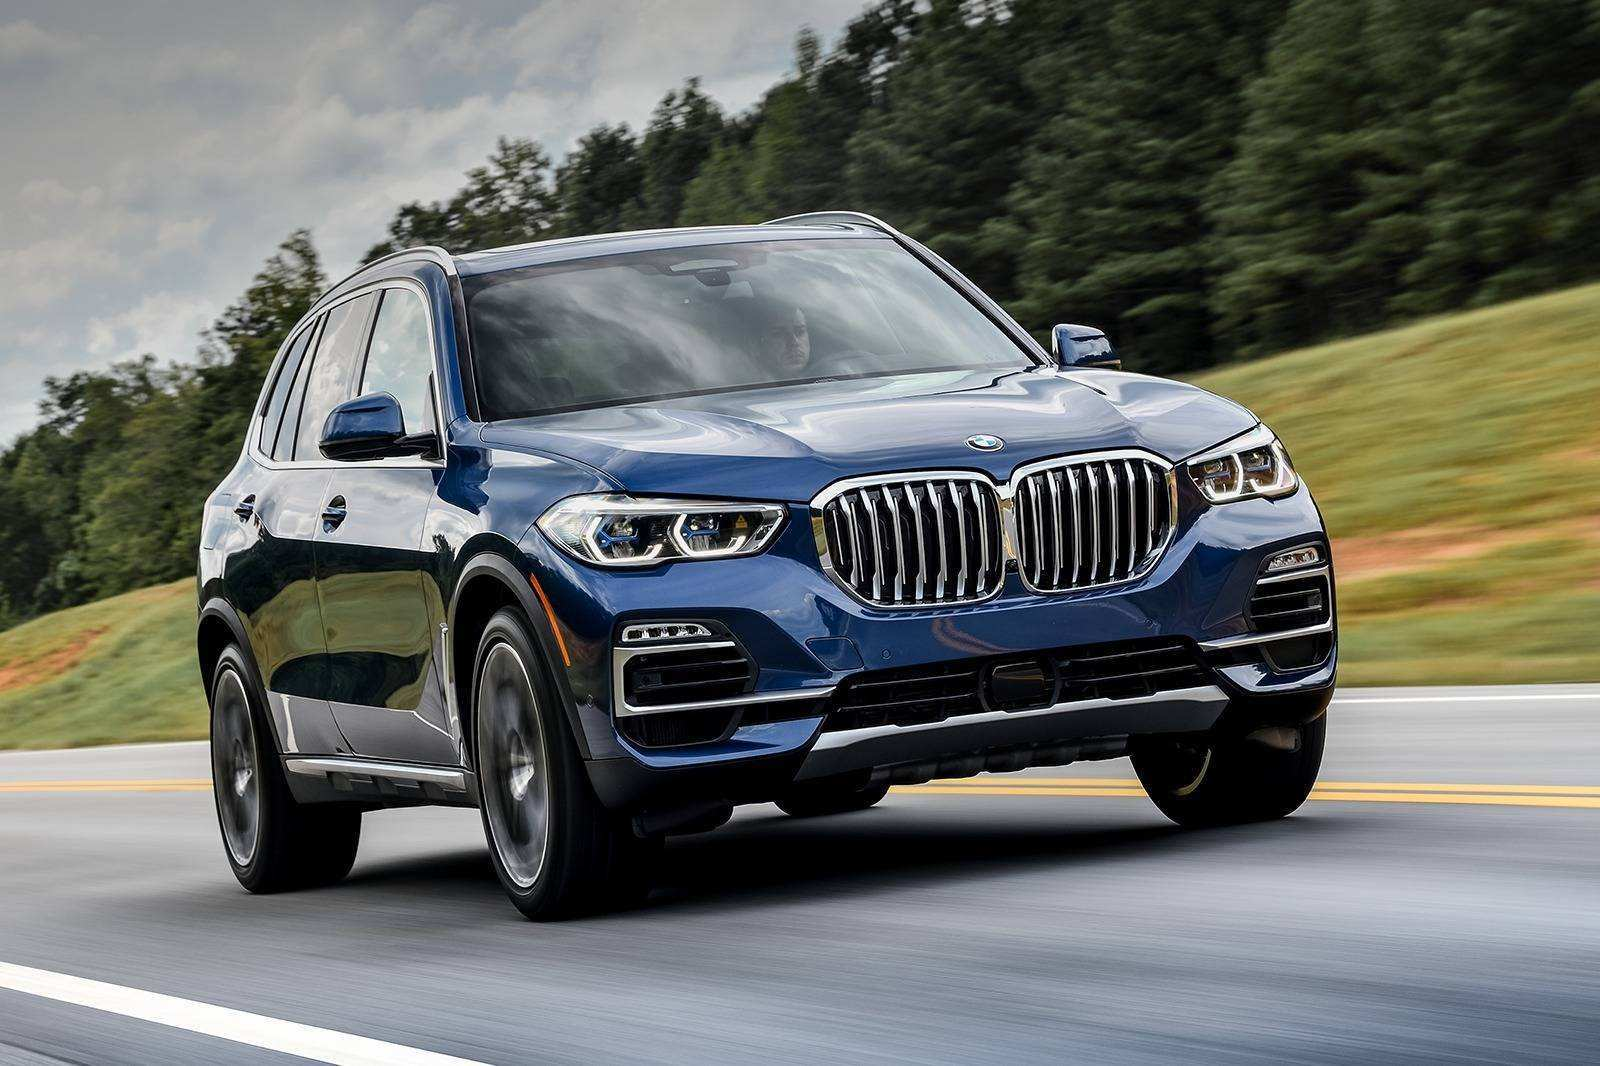 63 New Bmw 2019 X5 Release Date Performance Configurations by Bmw 2019 X5 Release Date Performance